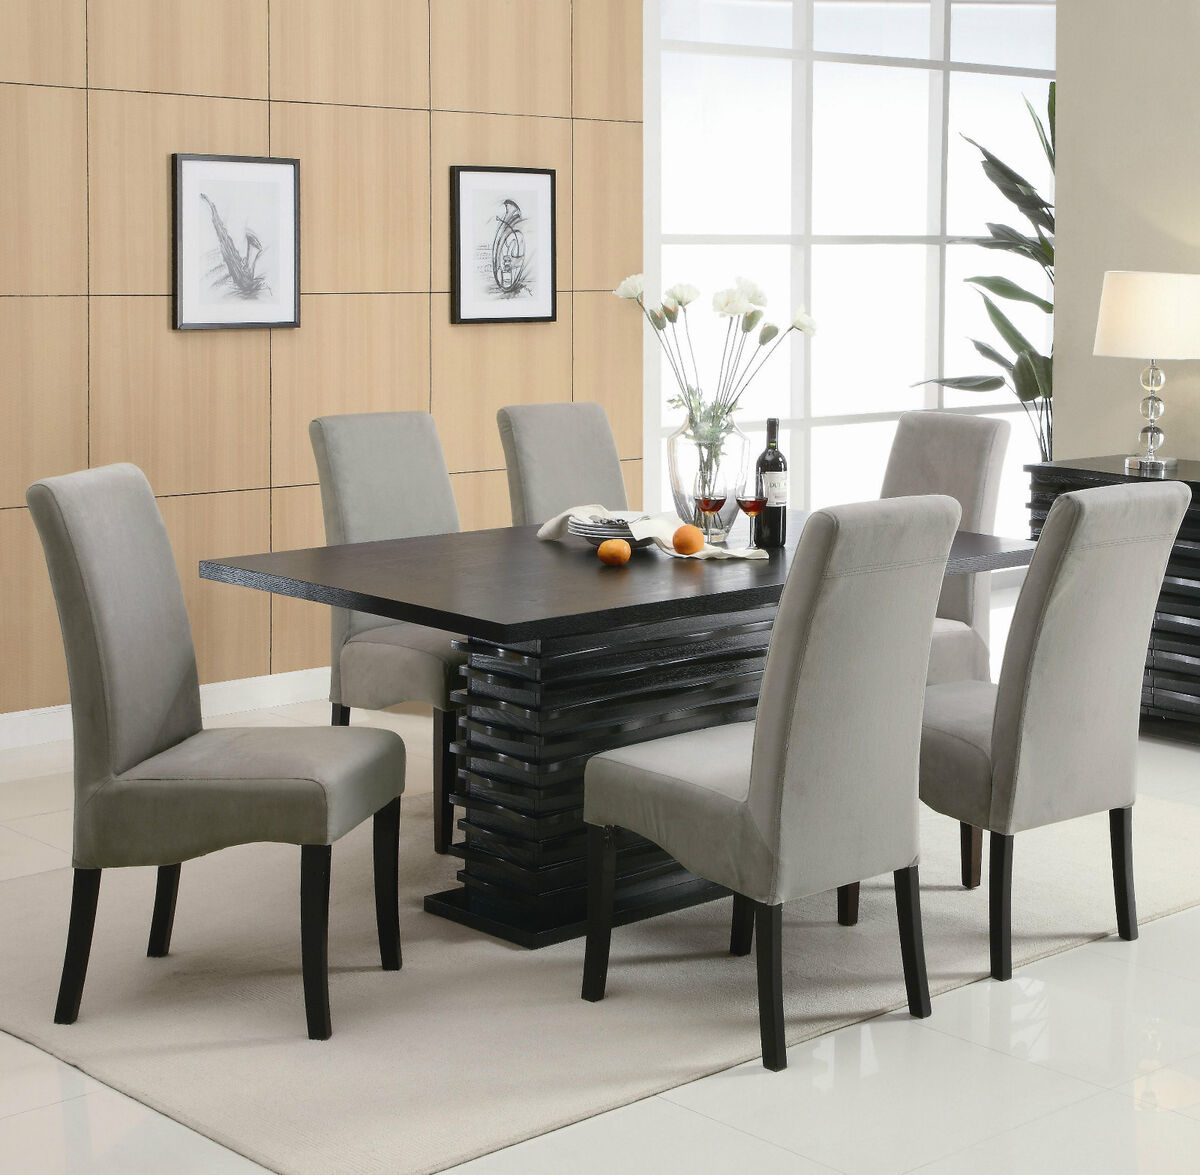 Dining table furniture contemporary dining table chairs for Images of dining room tables